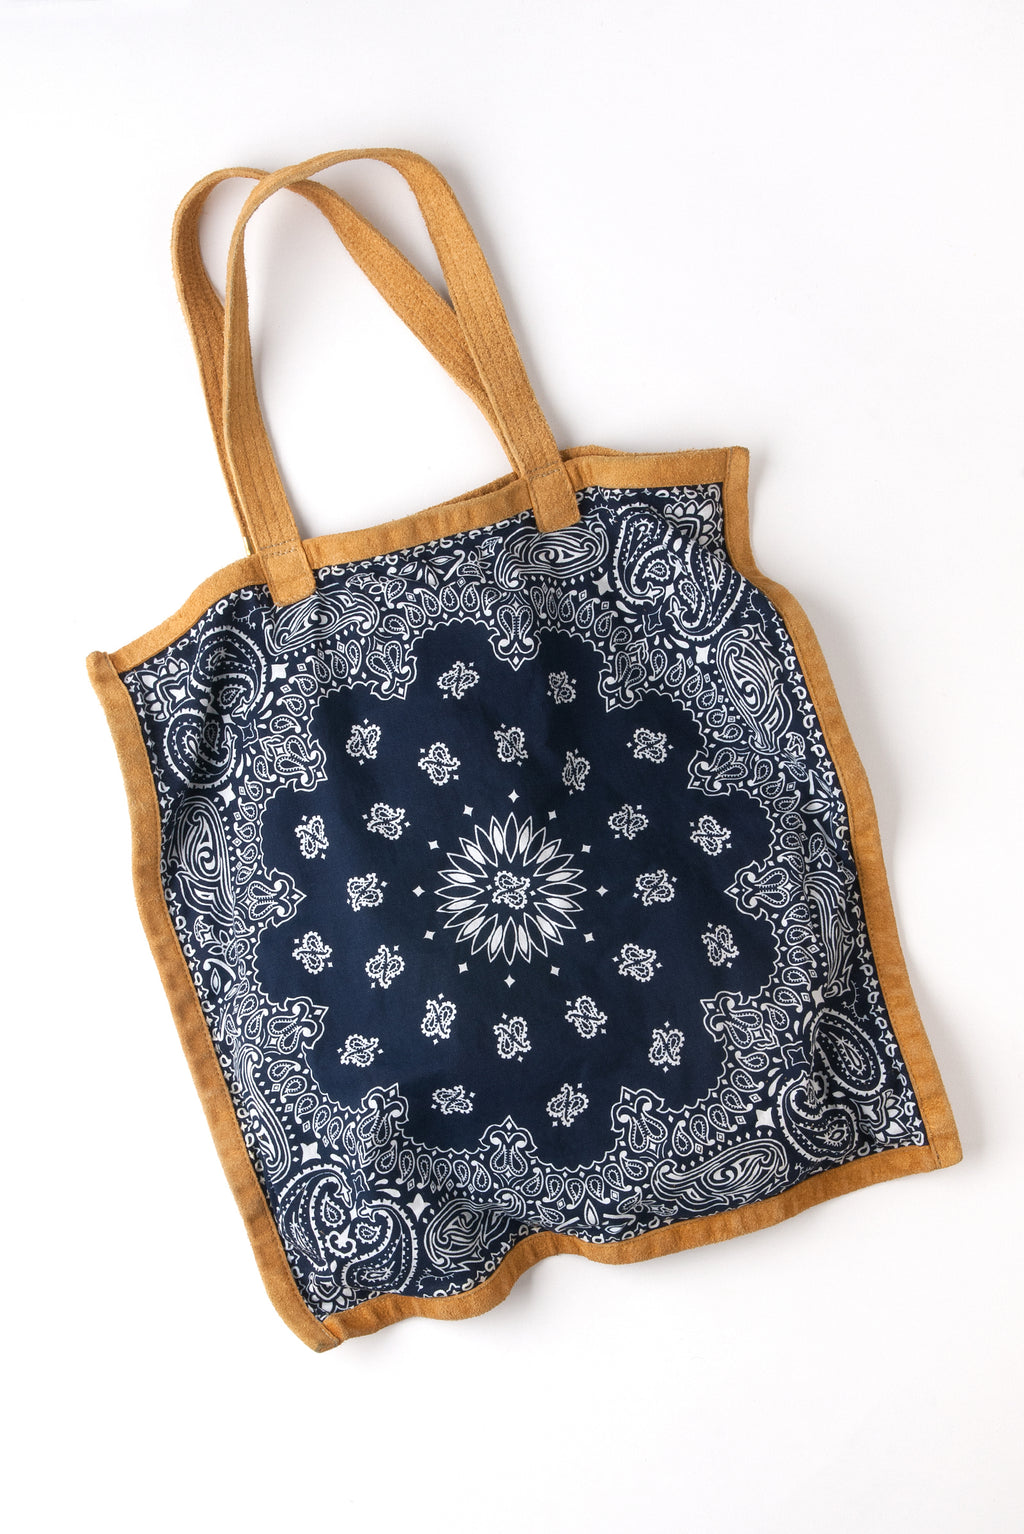 BANDANA TOTE IN NAVY WITH LEATHER